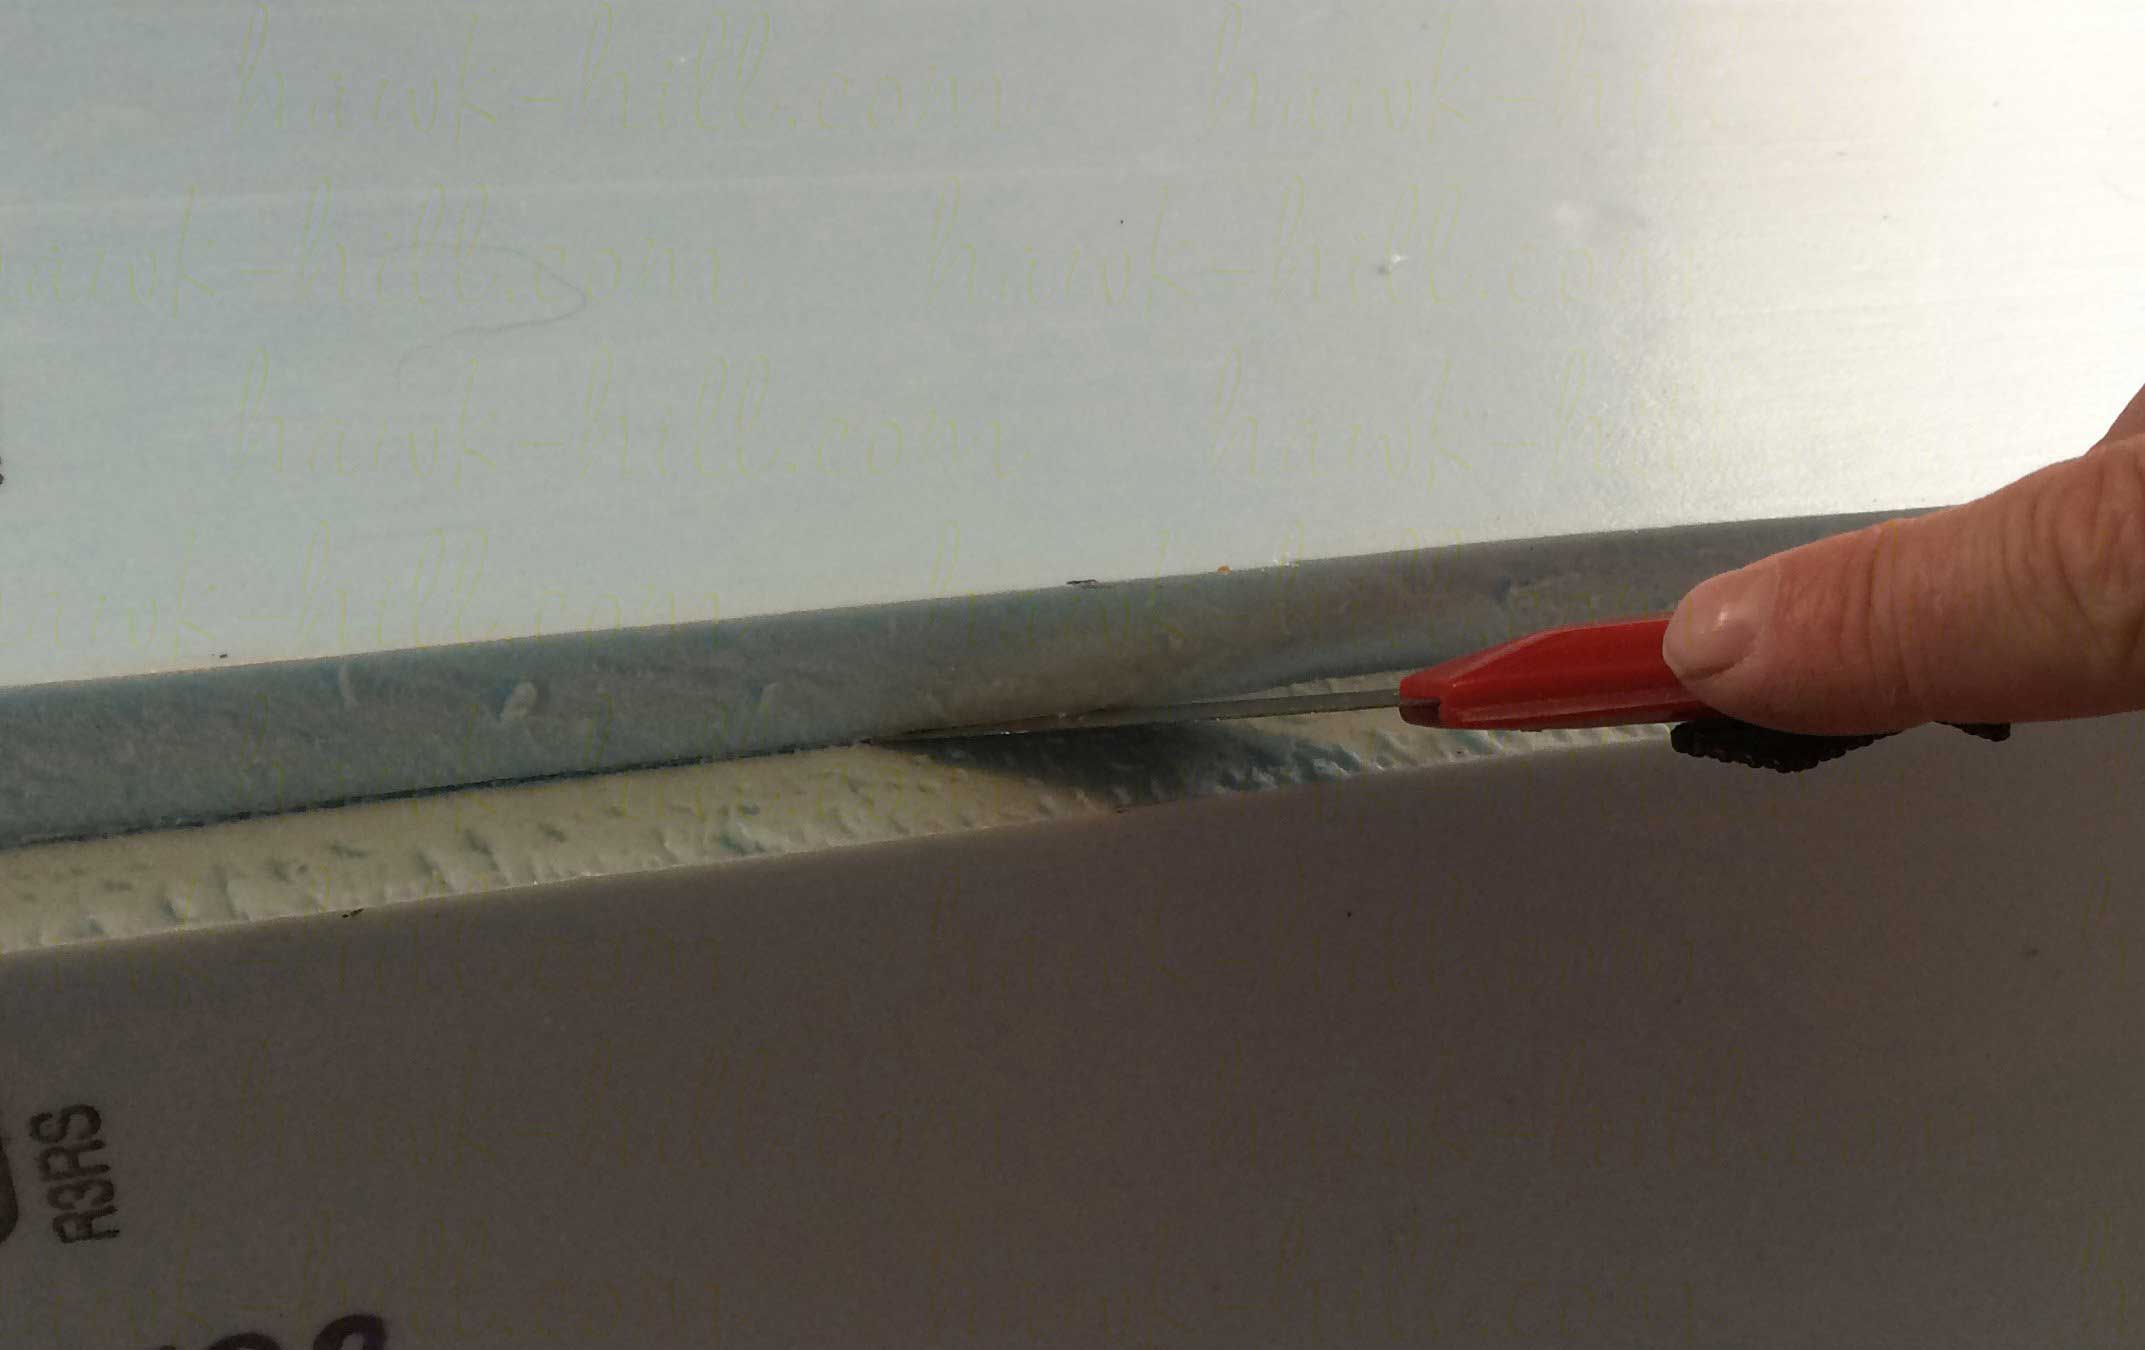 DIY dresser drawer dividers made from this foam board require careful cutting